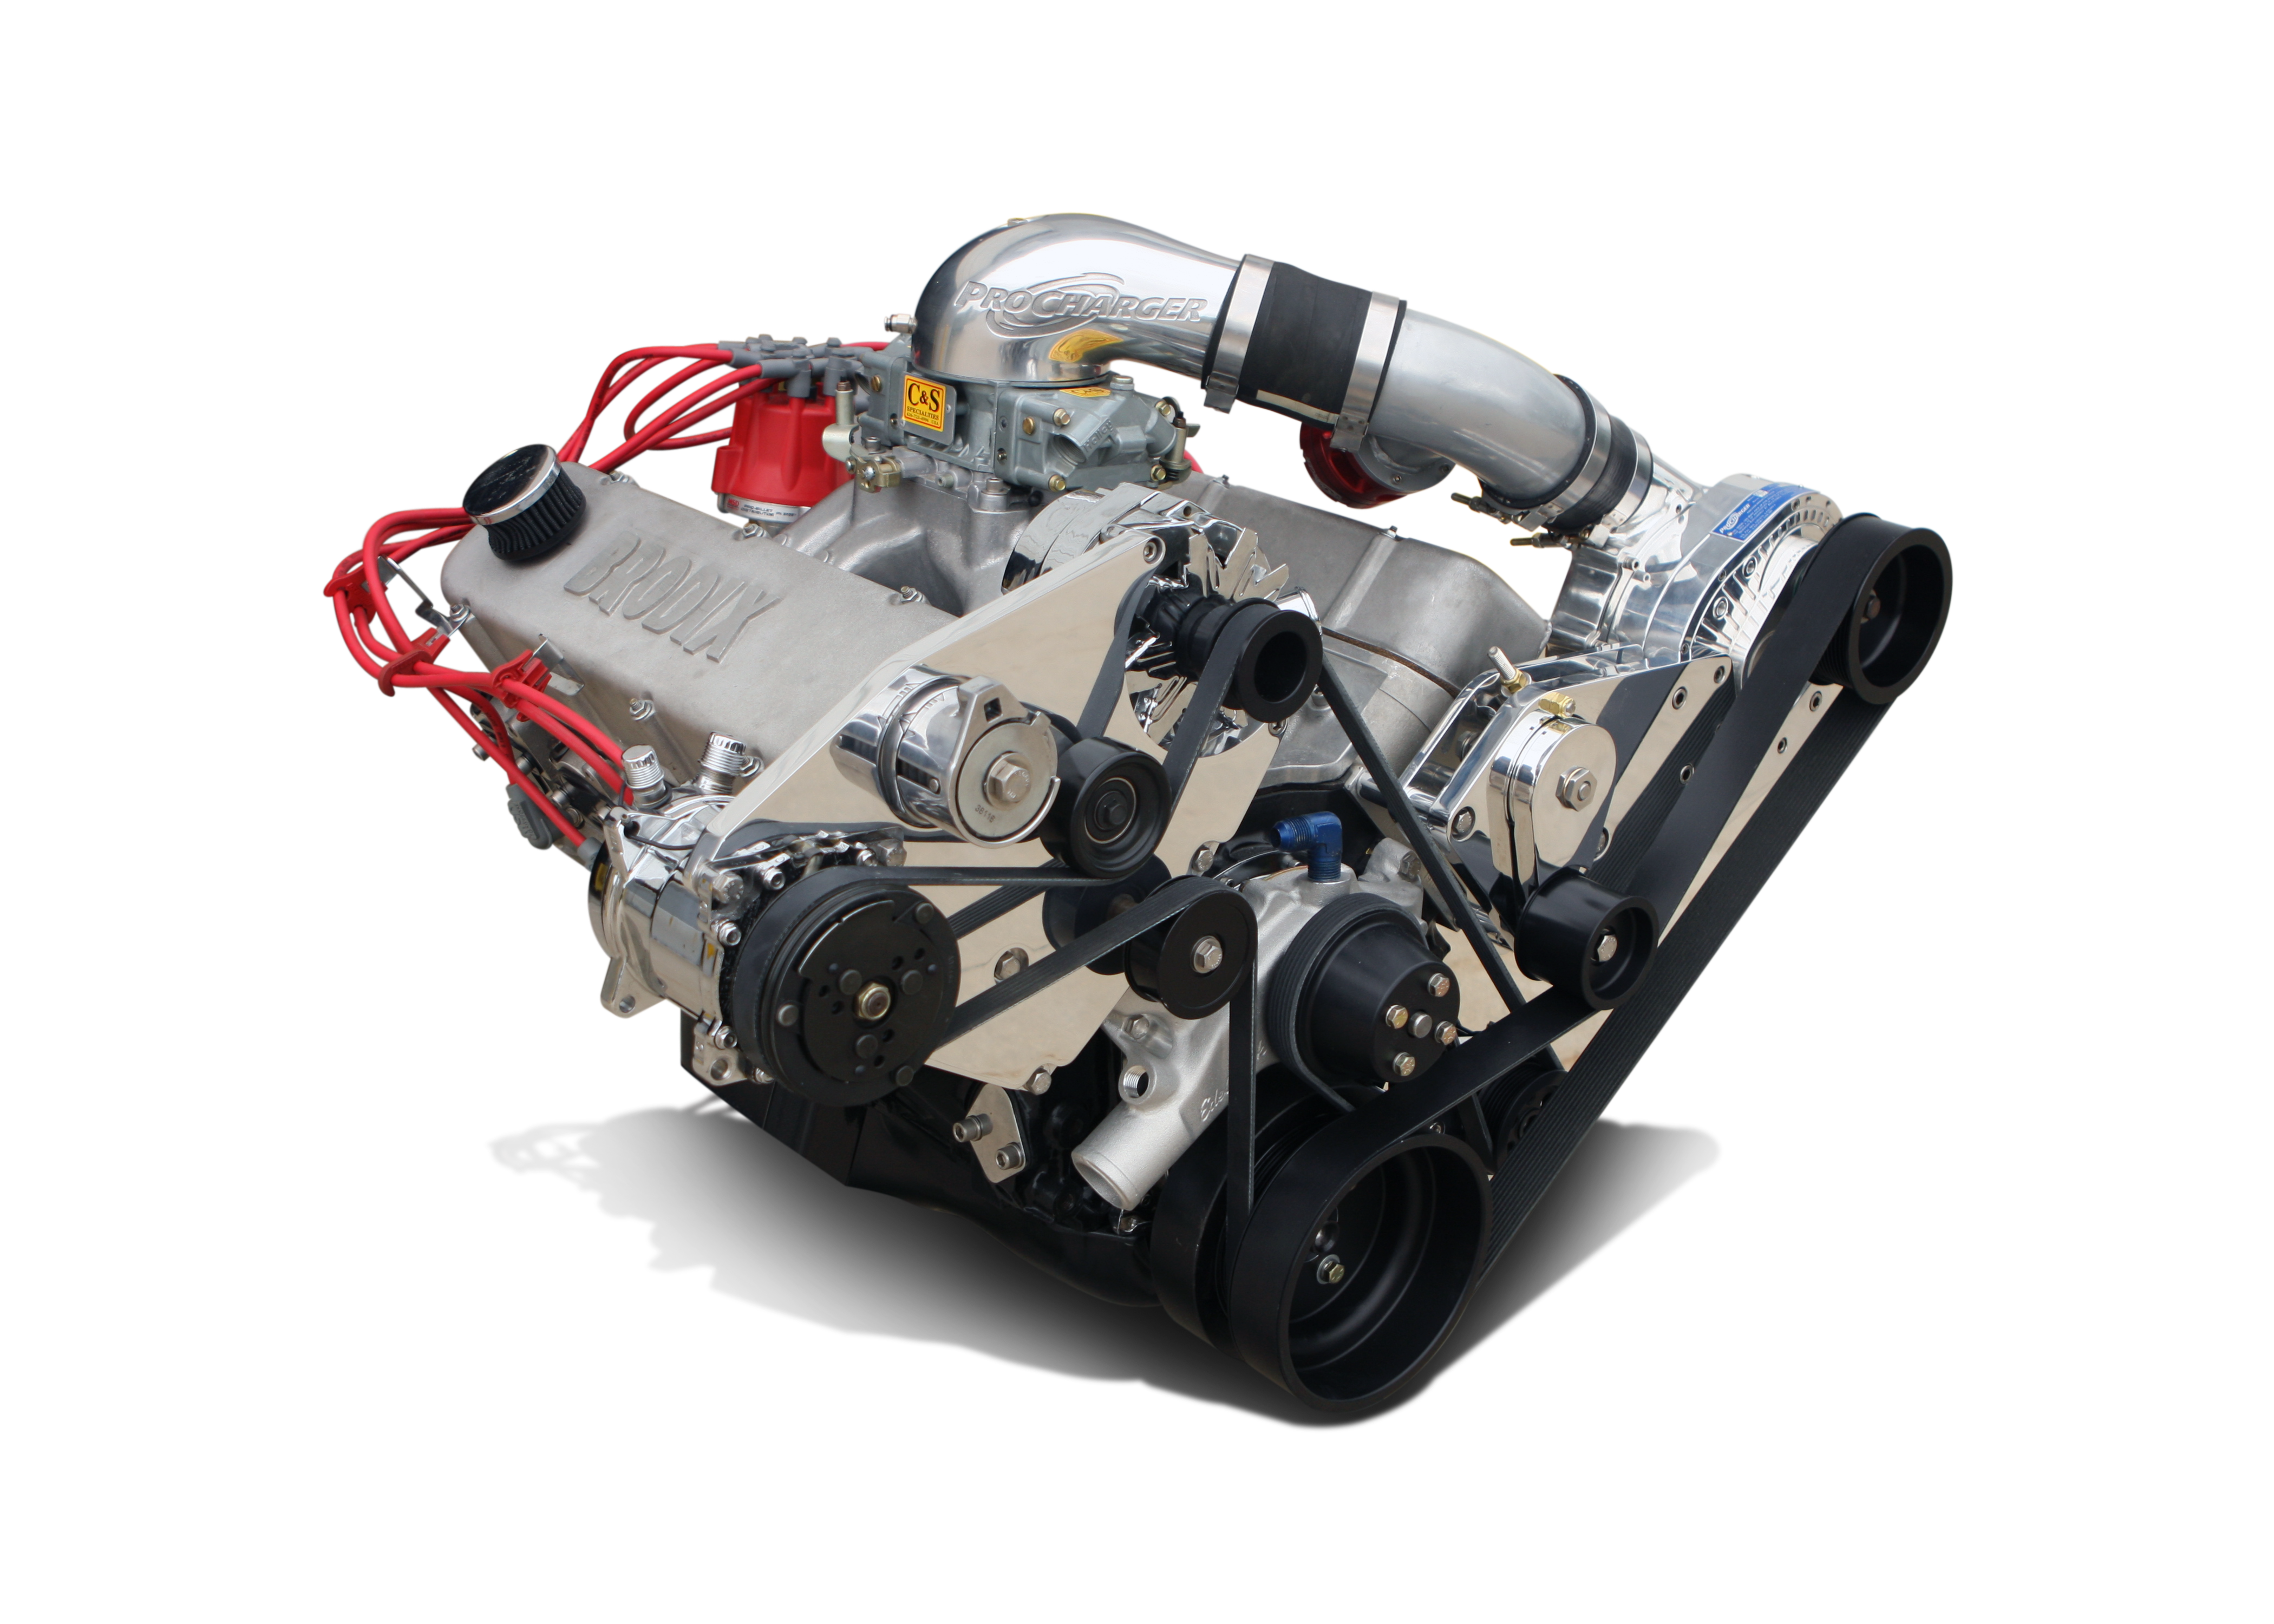 LS Swap – Carb Systems   LRS Performance Inc